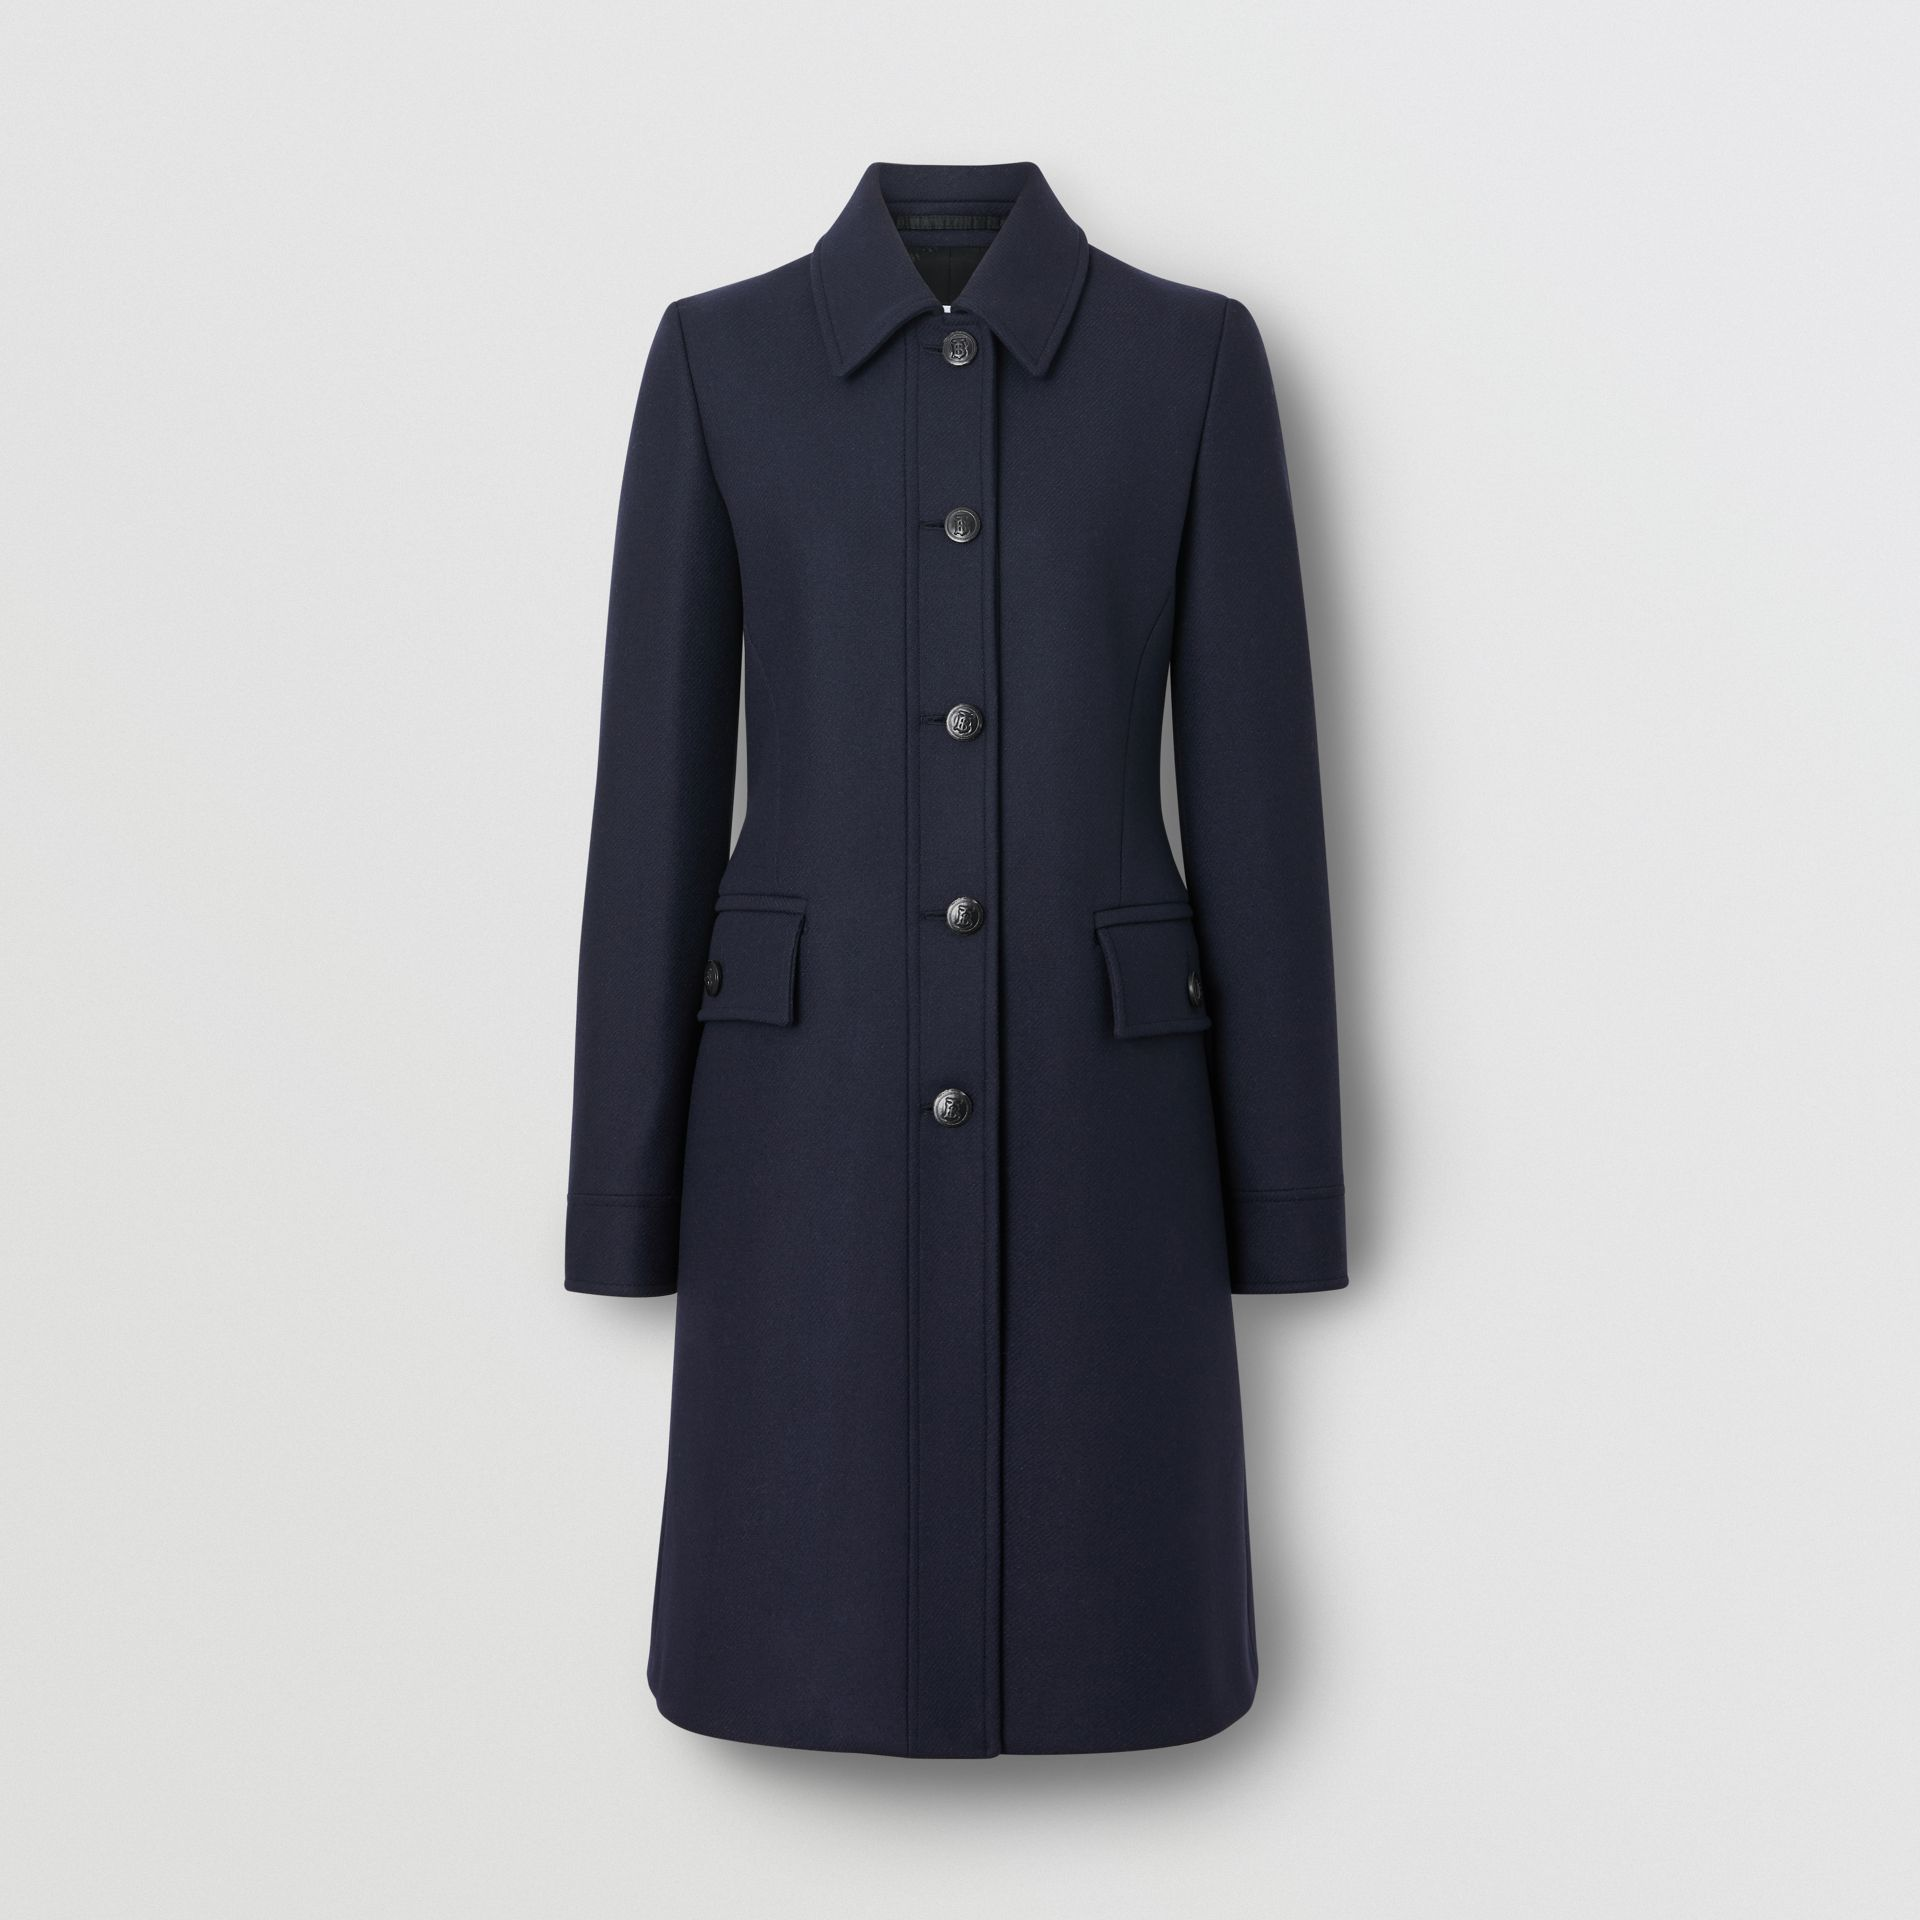 Double-faced Wool Cashmere Blend Coat in Navy - Women | Burberry - gallery image 2